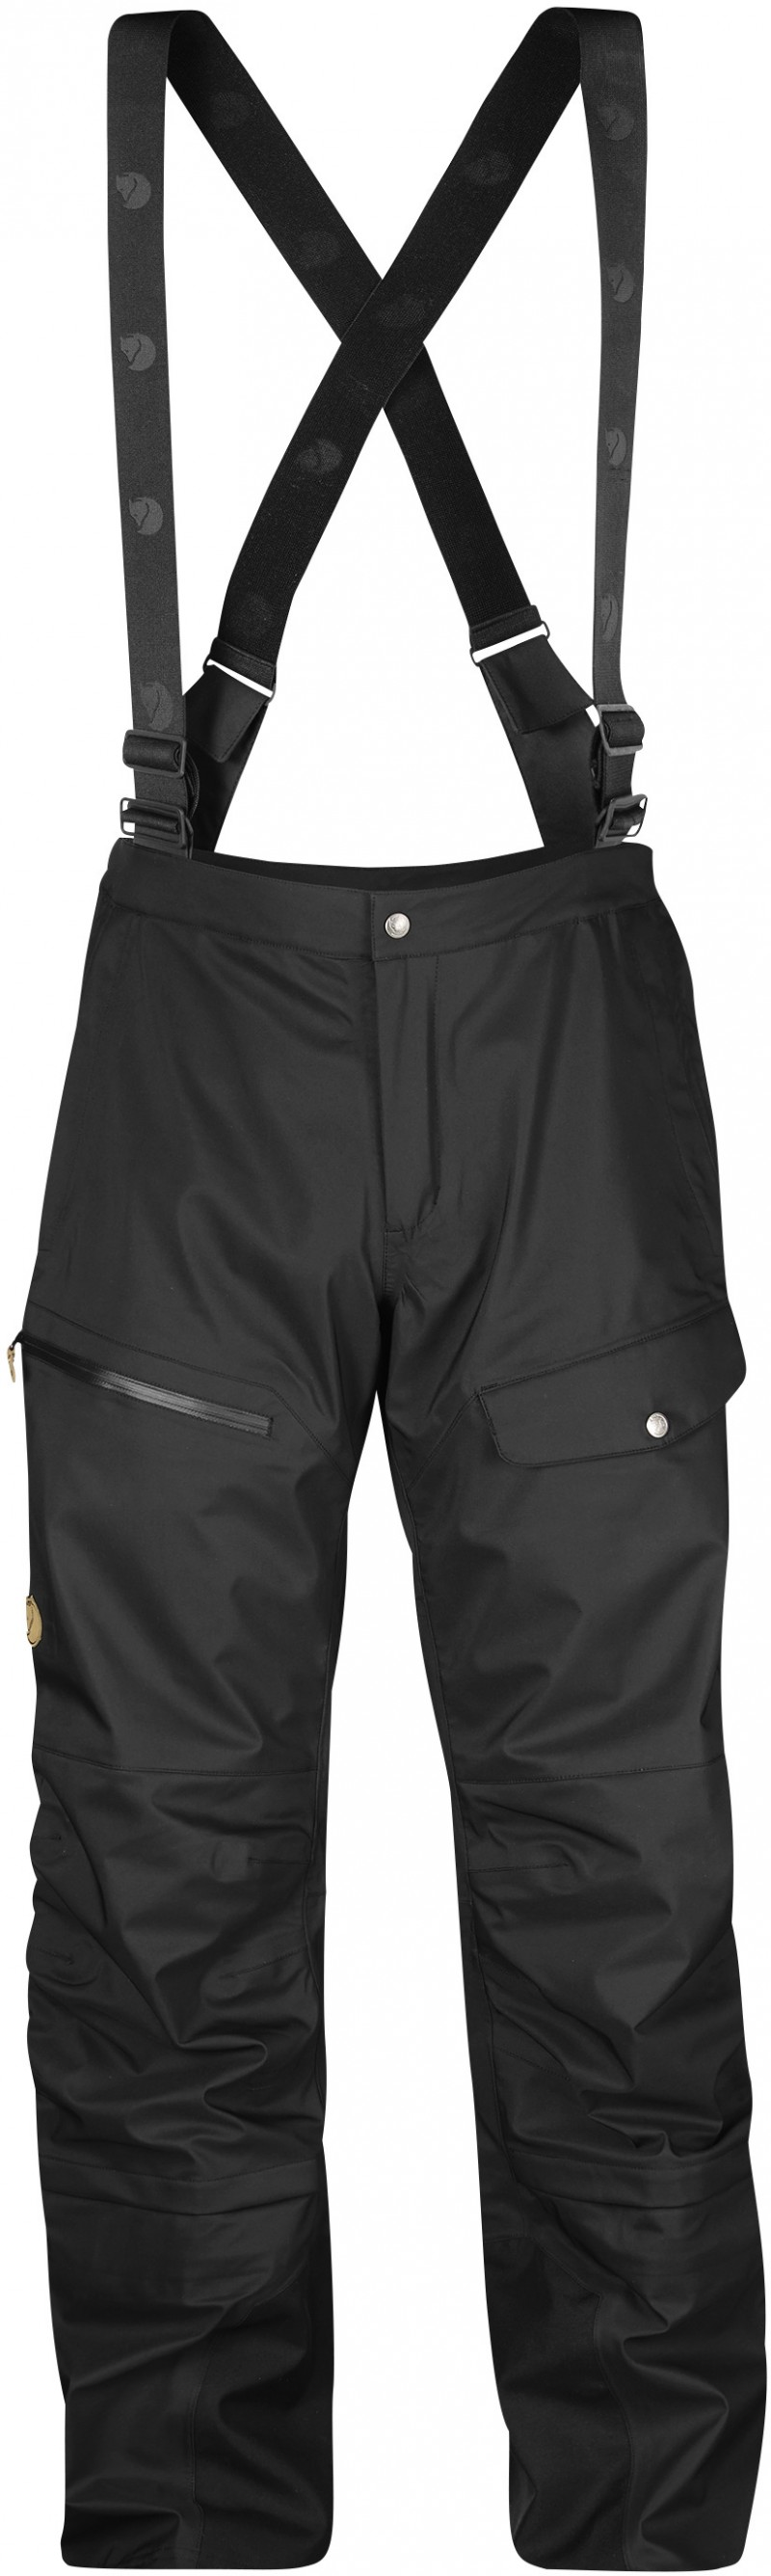 FjallRaven Eco-Tour Trousers Black-30